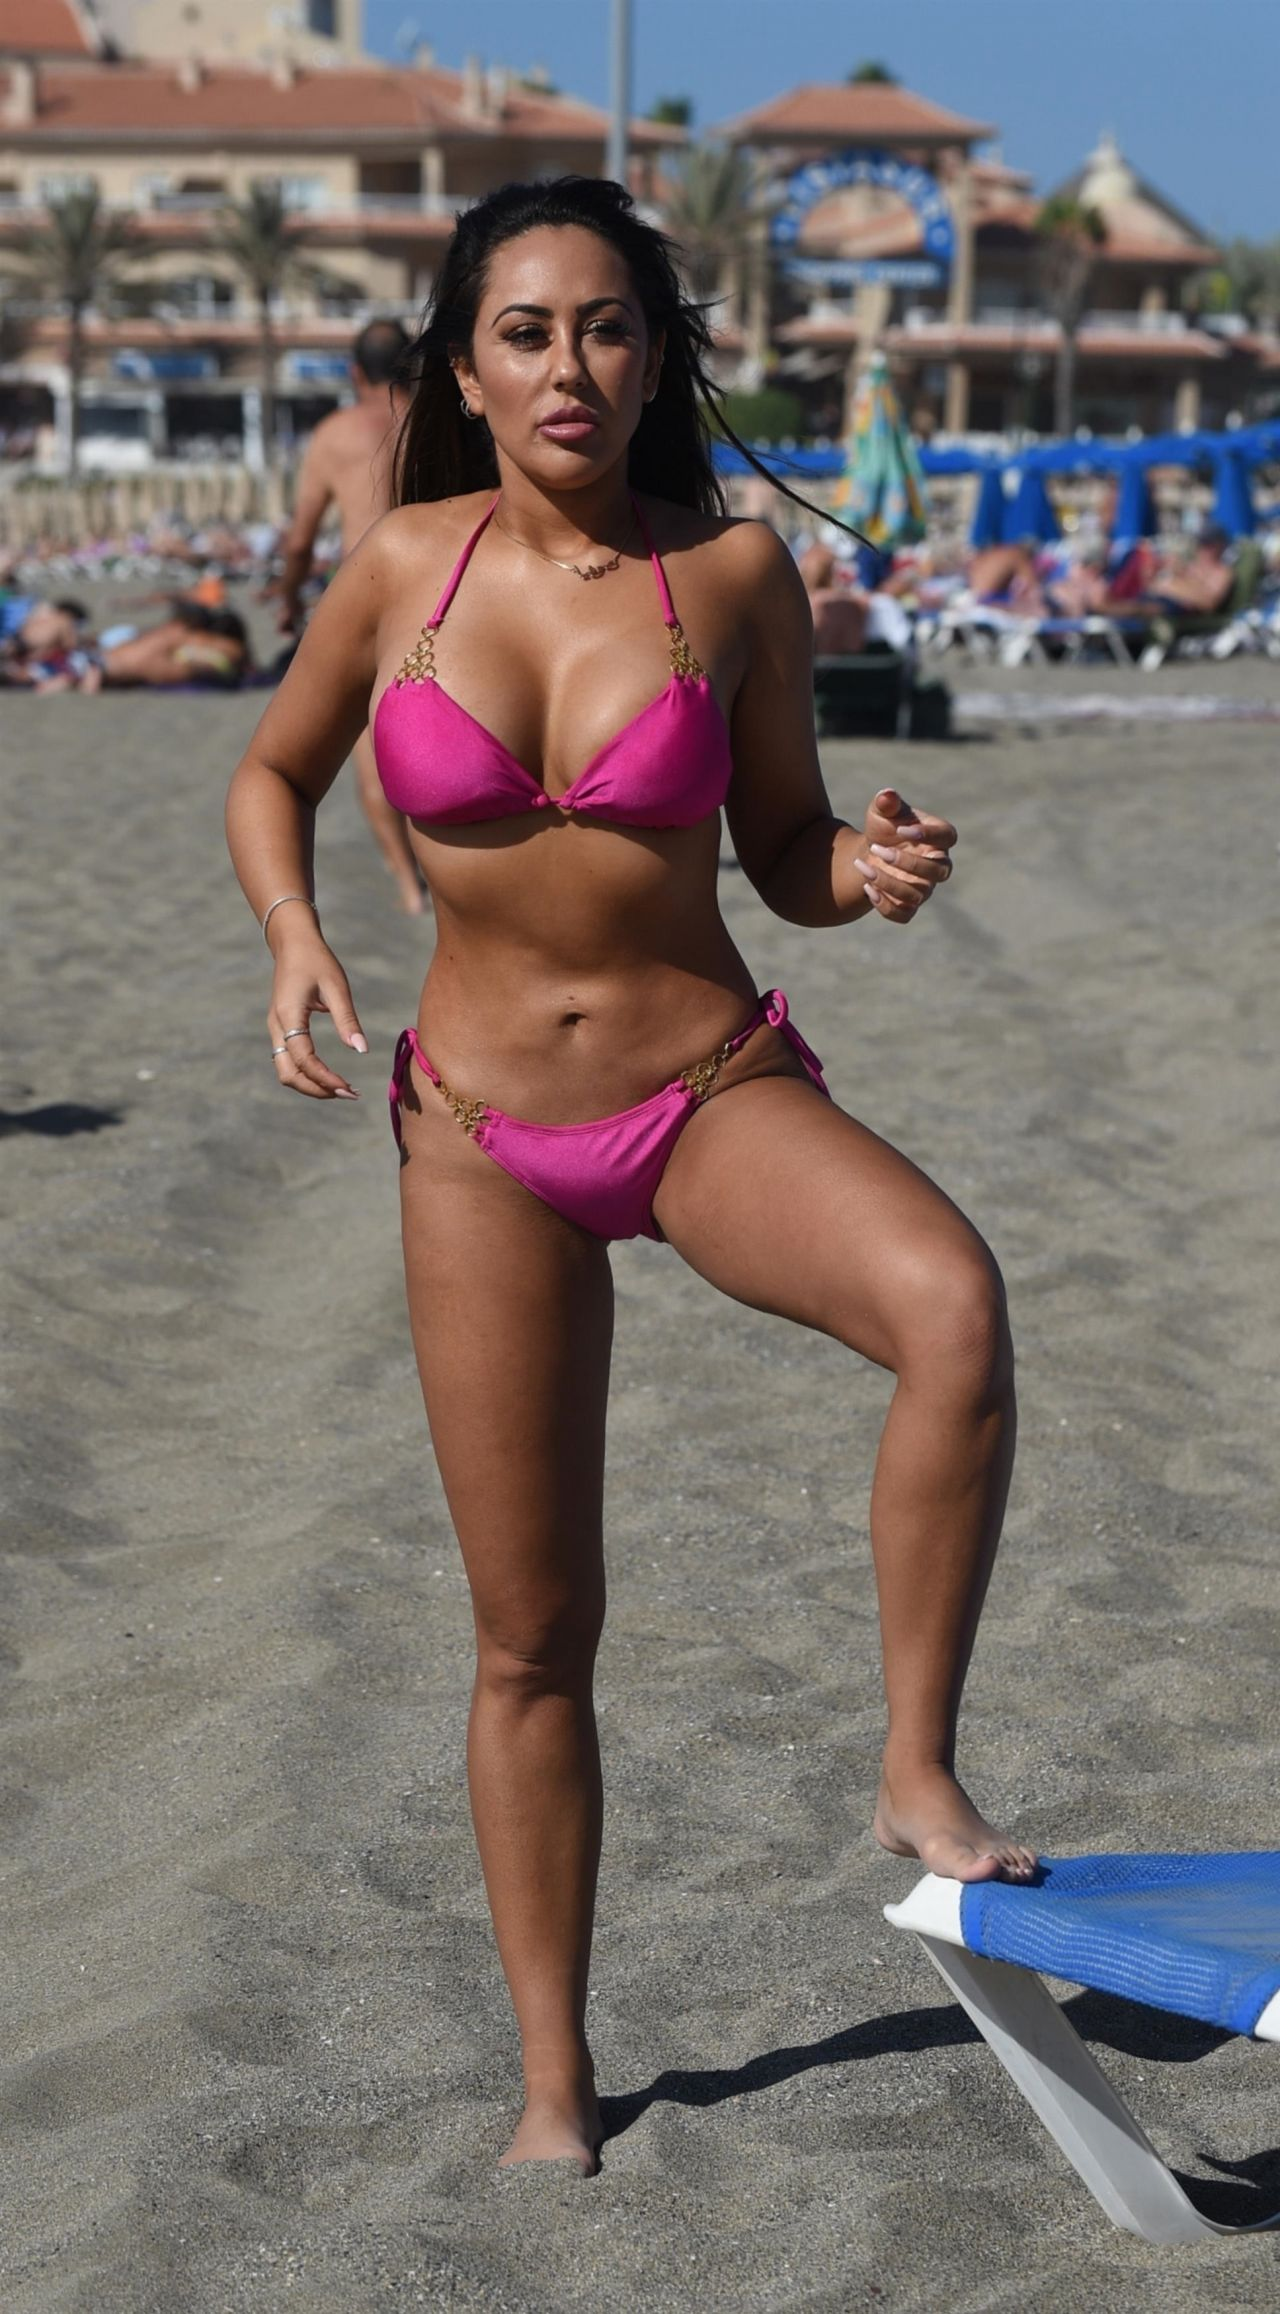 Sophie Kasaei in Pink Bikini on the beach in Lanzarote Pic 10 of 35